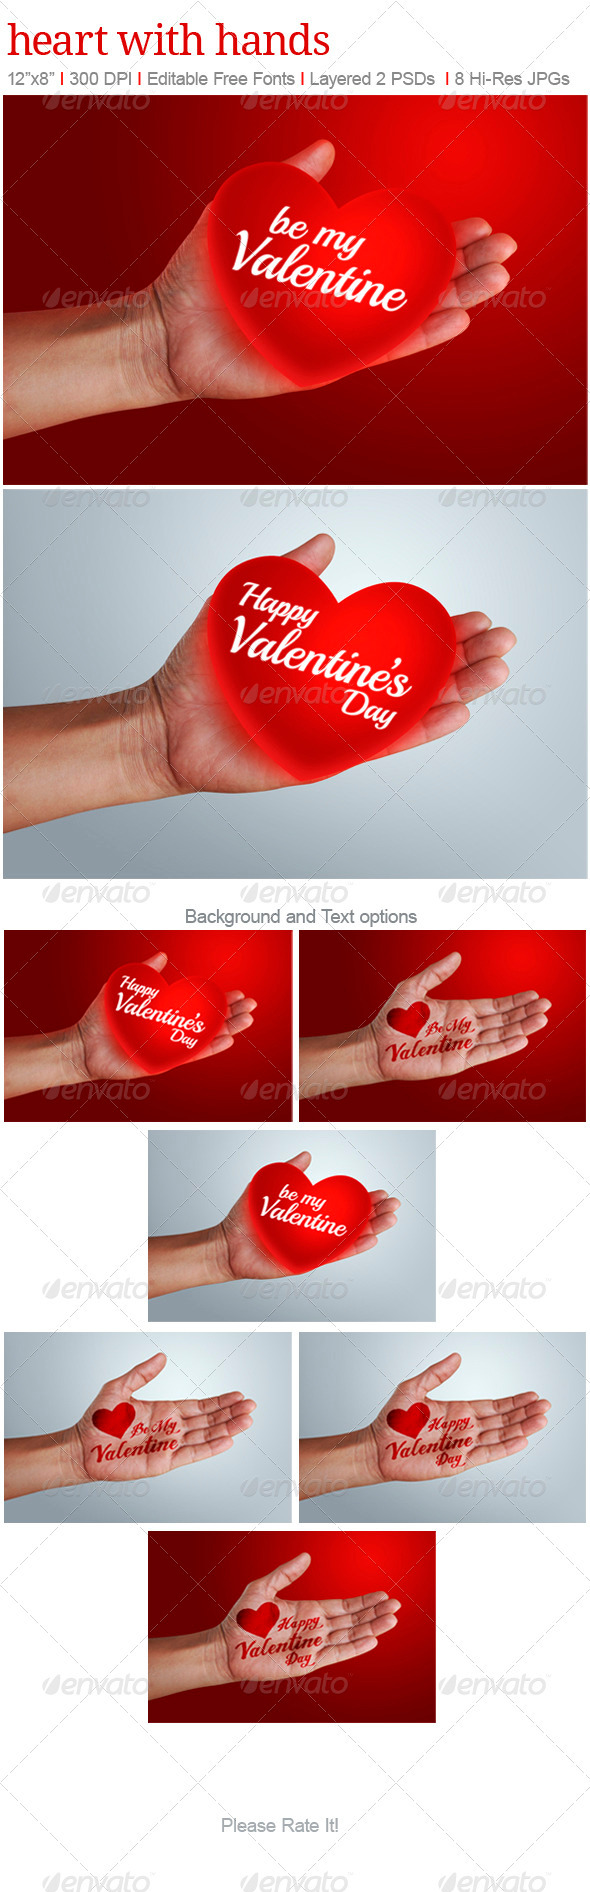 GraphicRiver Heart with Hands 3741557